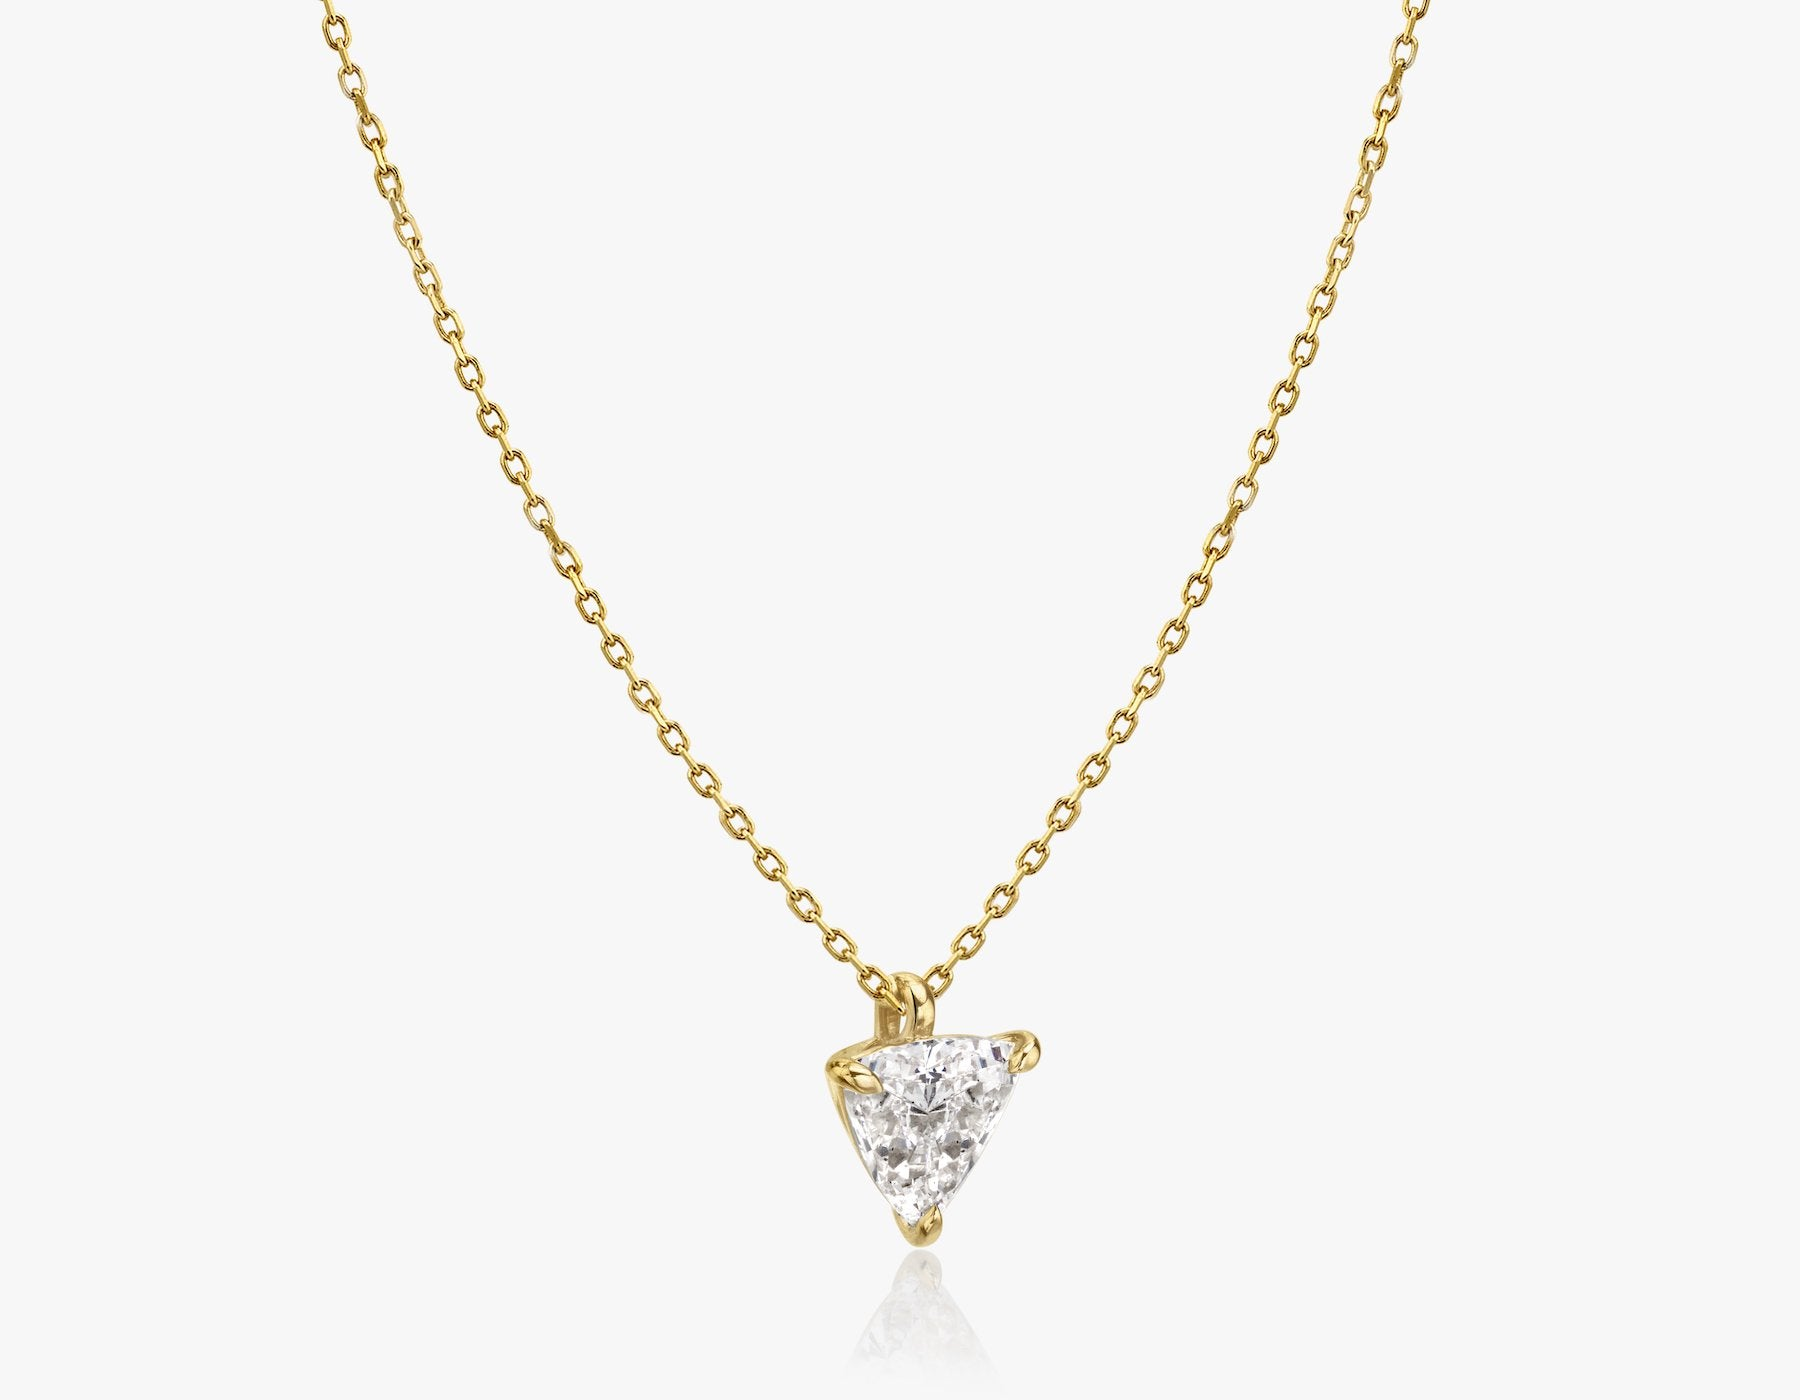 Vrai 14k solid gold Solitaire Trillion Diamond Pendant sustainably created triangle diamond prong set on simple chain necklace side view, 14K Yellow Gold